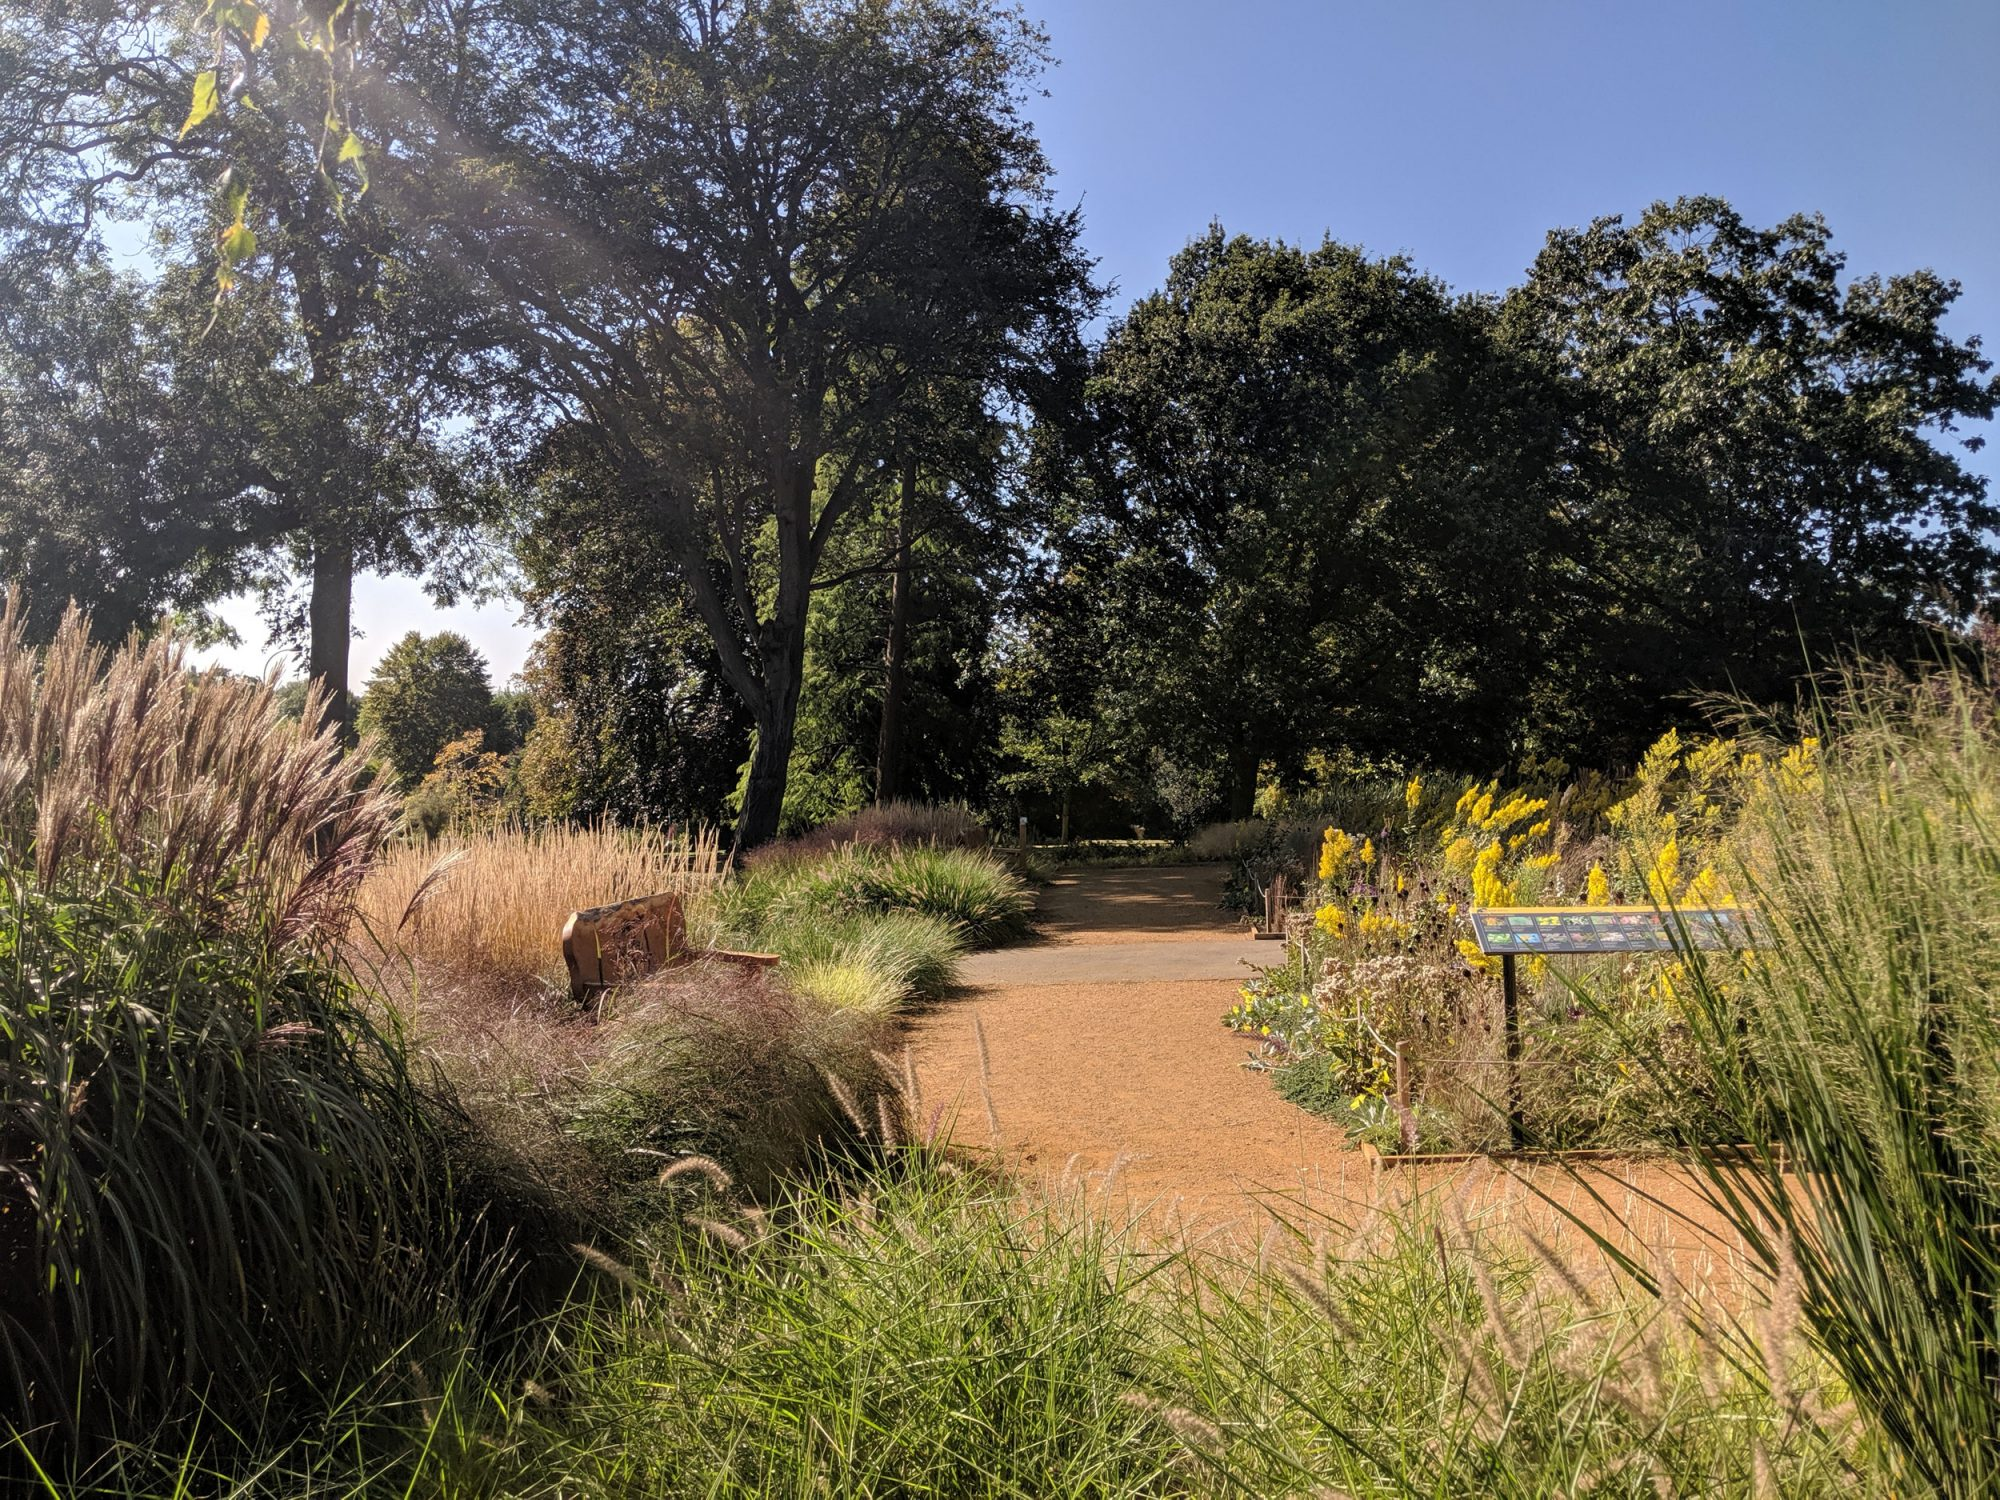 A wild and grassy garden on a sunny day. There is a bench to the left of a dirt path that runs through it. Trees are in the background and the sky is blue.